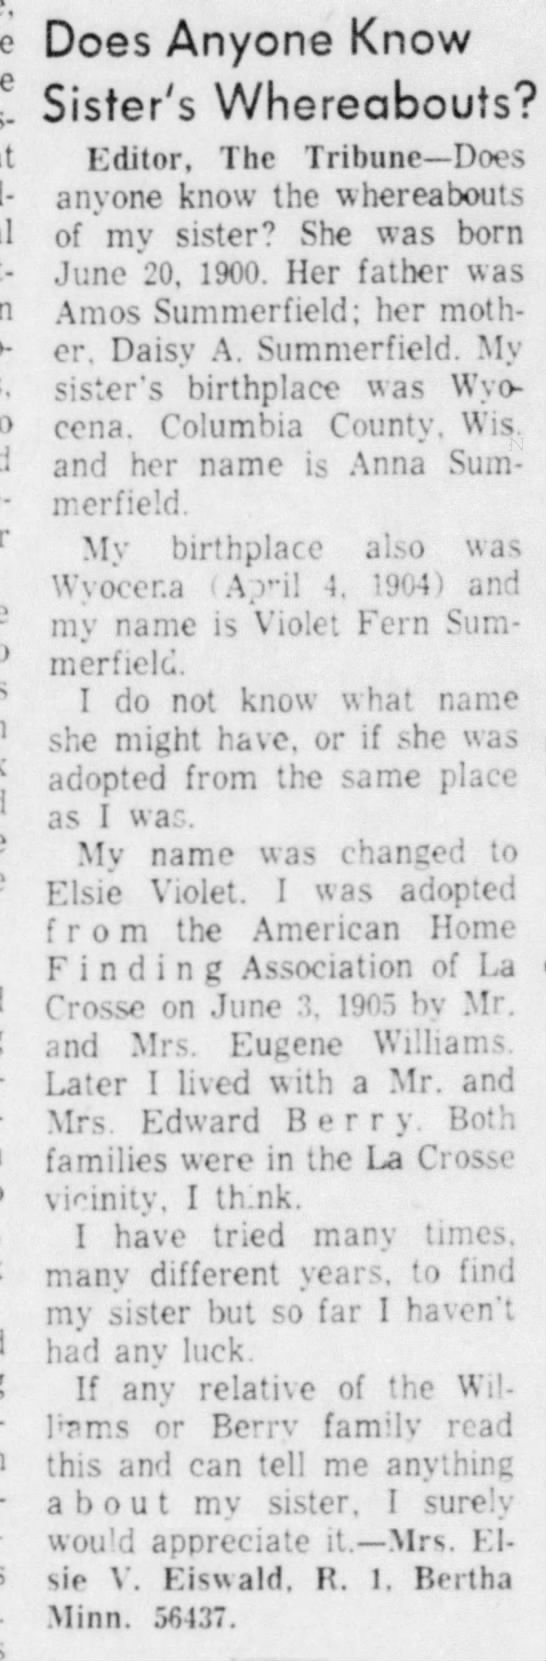 Elsie V. Eiswald asking for info on sister. - Does Anyone Know r. , VA/L . . 0 JlSter S...